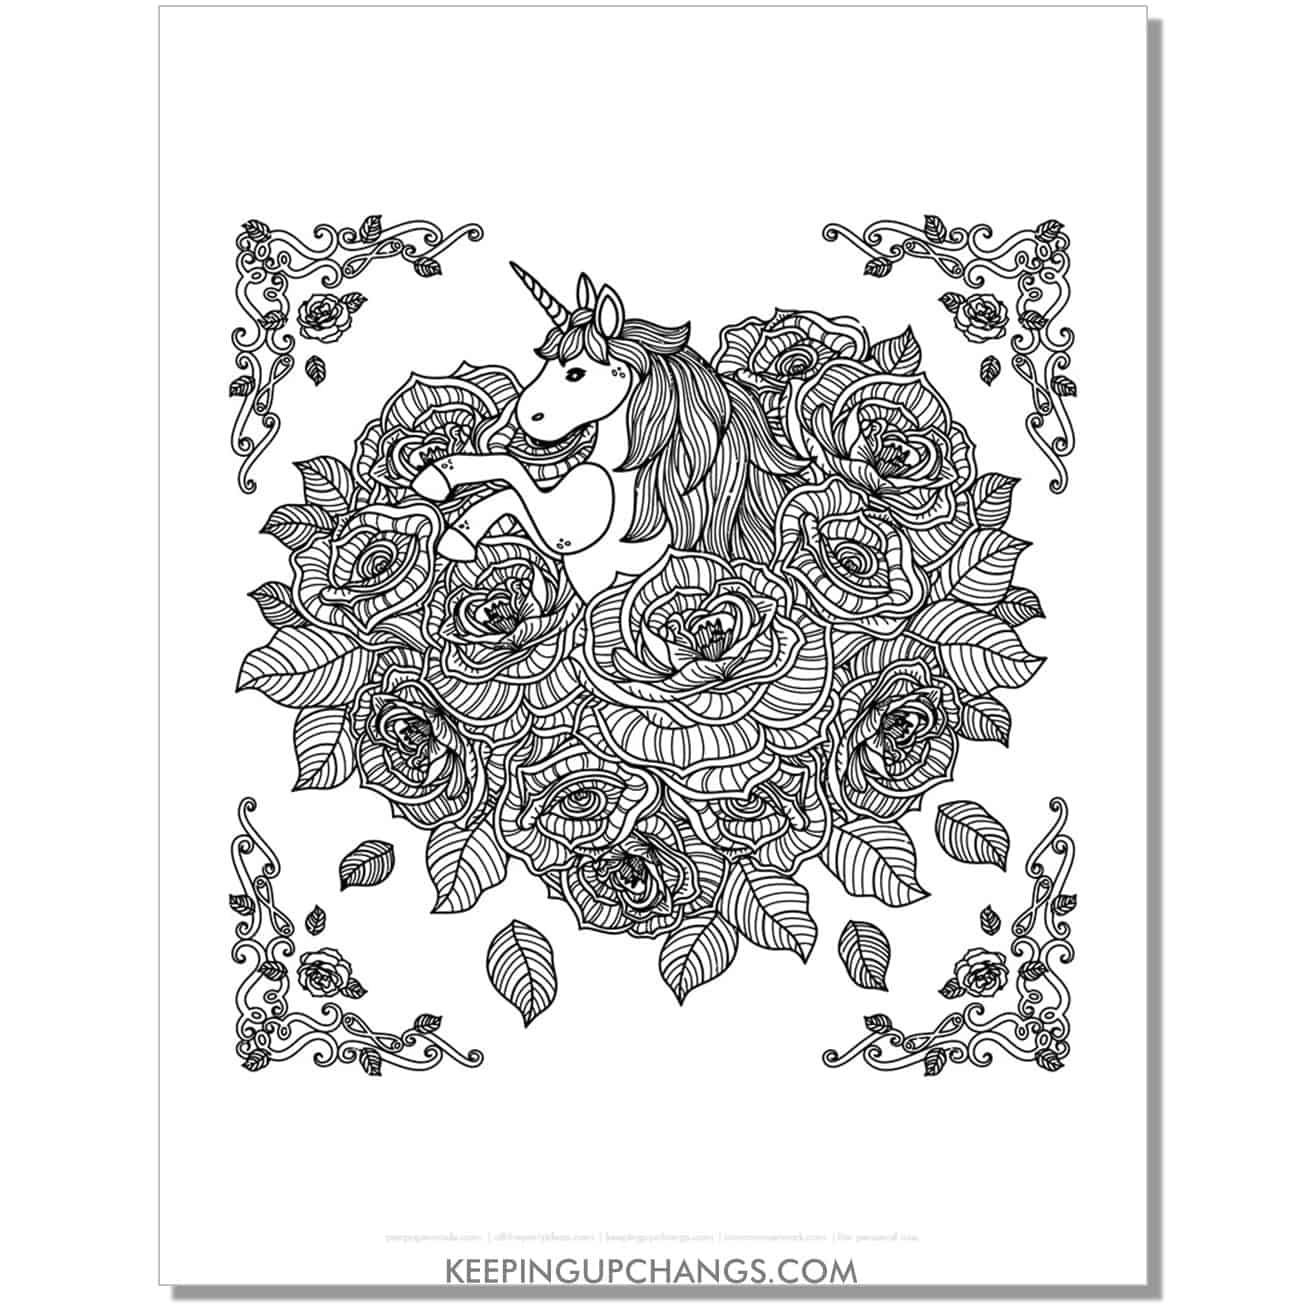 unicorn roses in shape of heart coloring page.